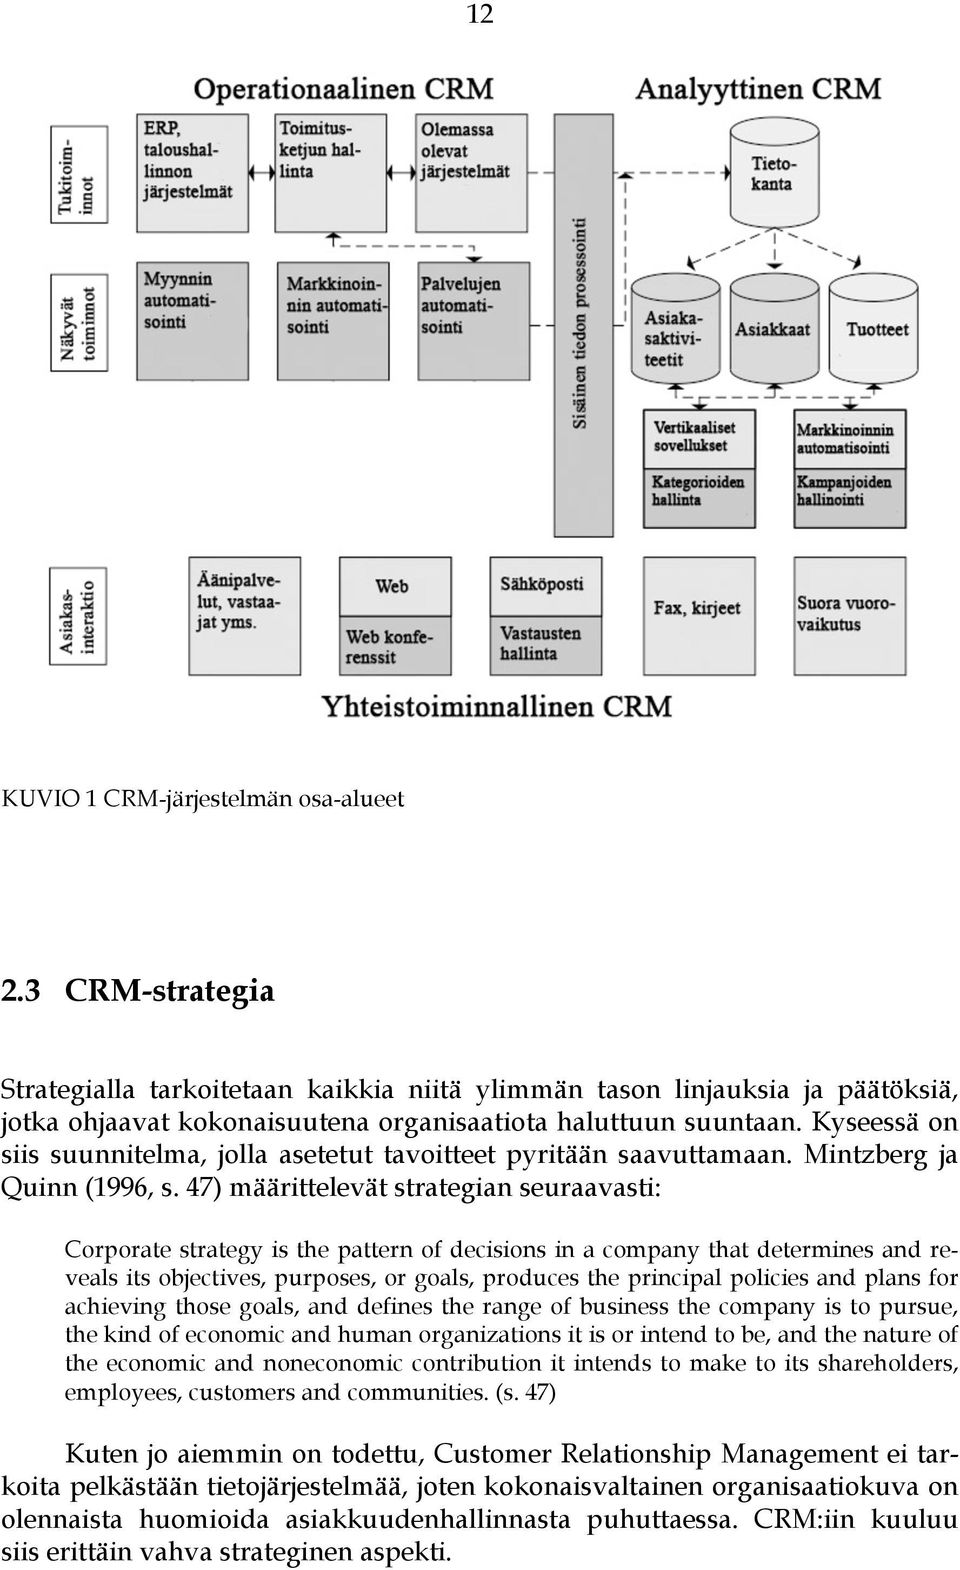 47) määrittelevät strategian seuraavasti: Corporate strategy is the pattern of decisions in a company that determines and reveals its objectives, purposes, or goals, produces the principal policies